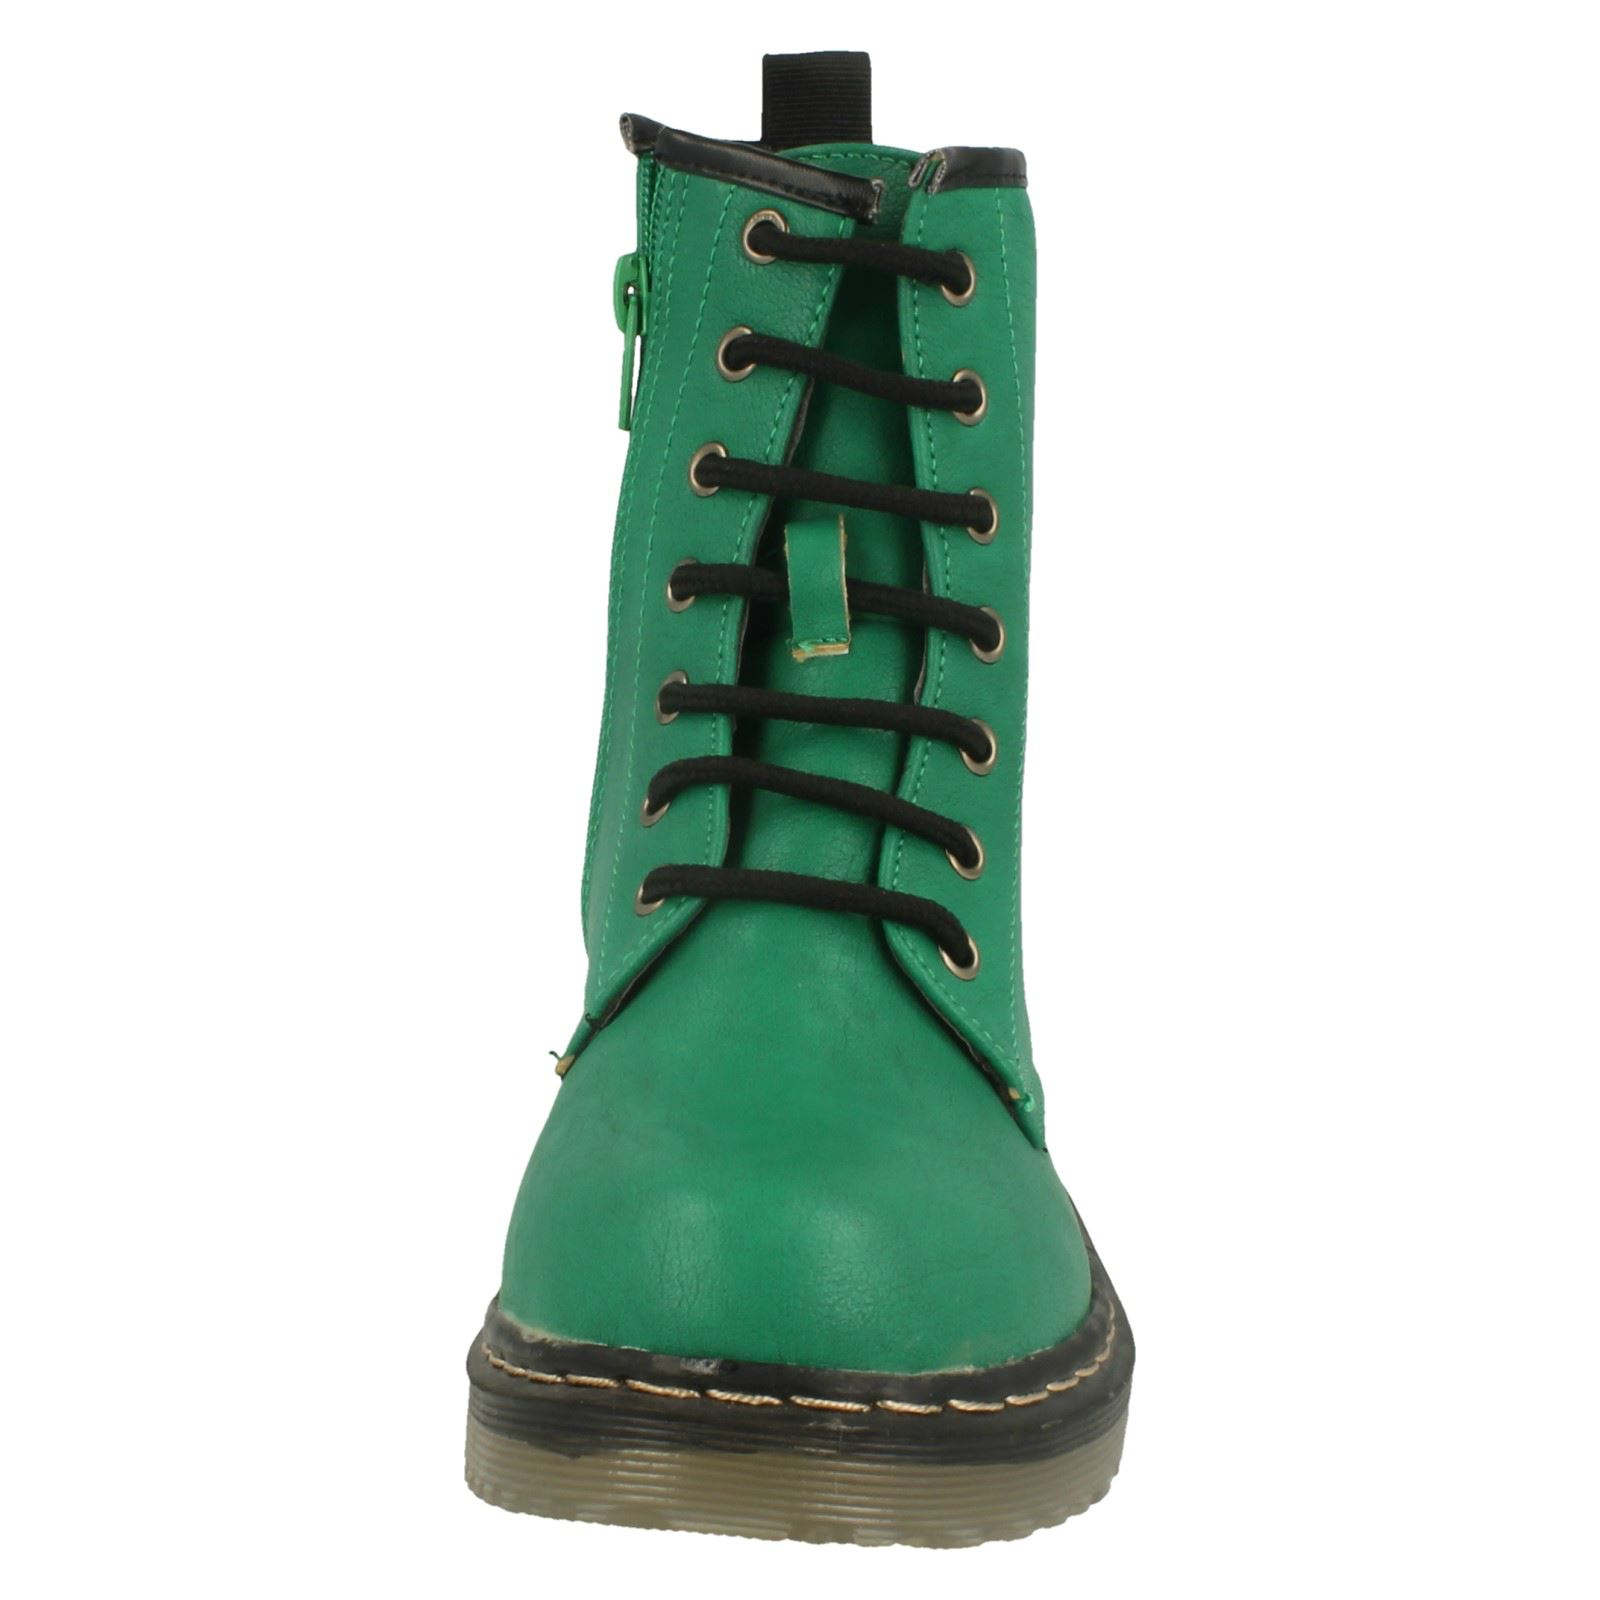 Spot-On-Childrens-Girls-Chunky-Sole-Lace-Up-Ankle-Boots-KM614